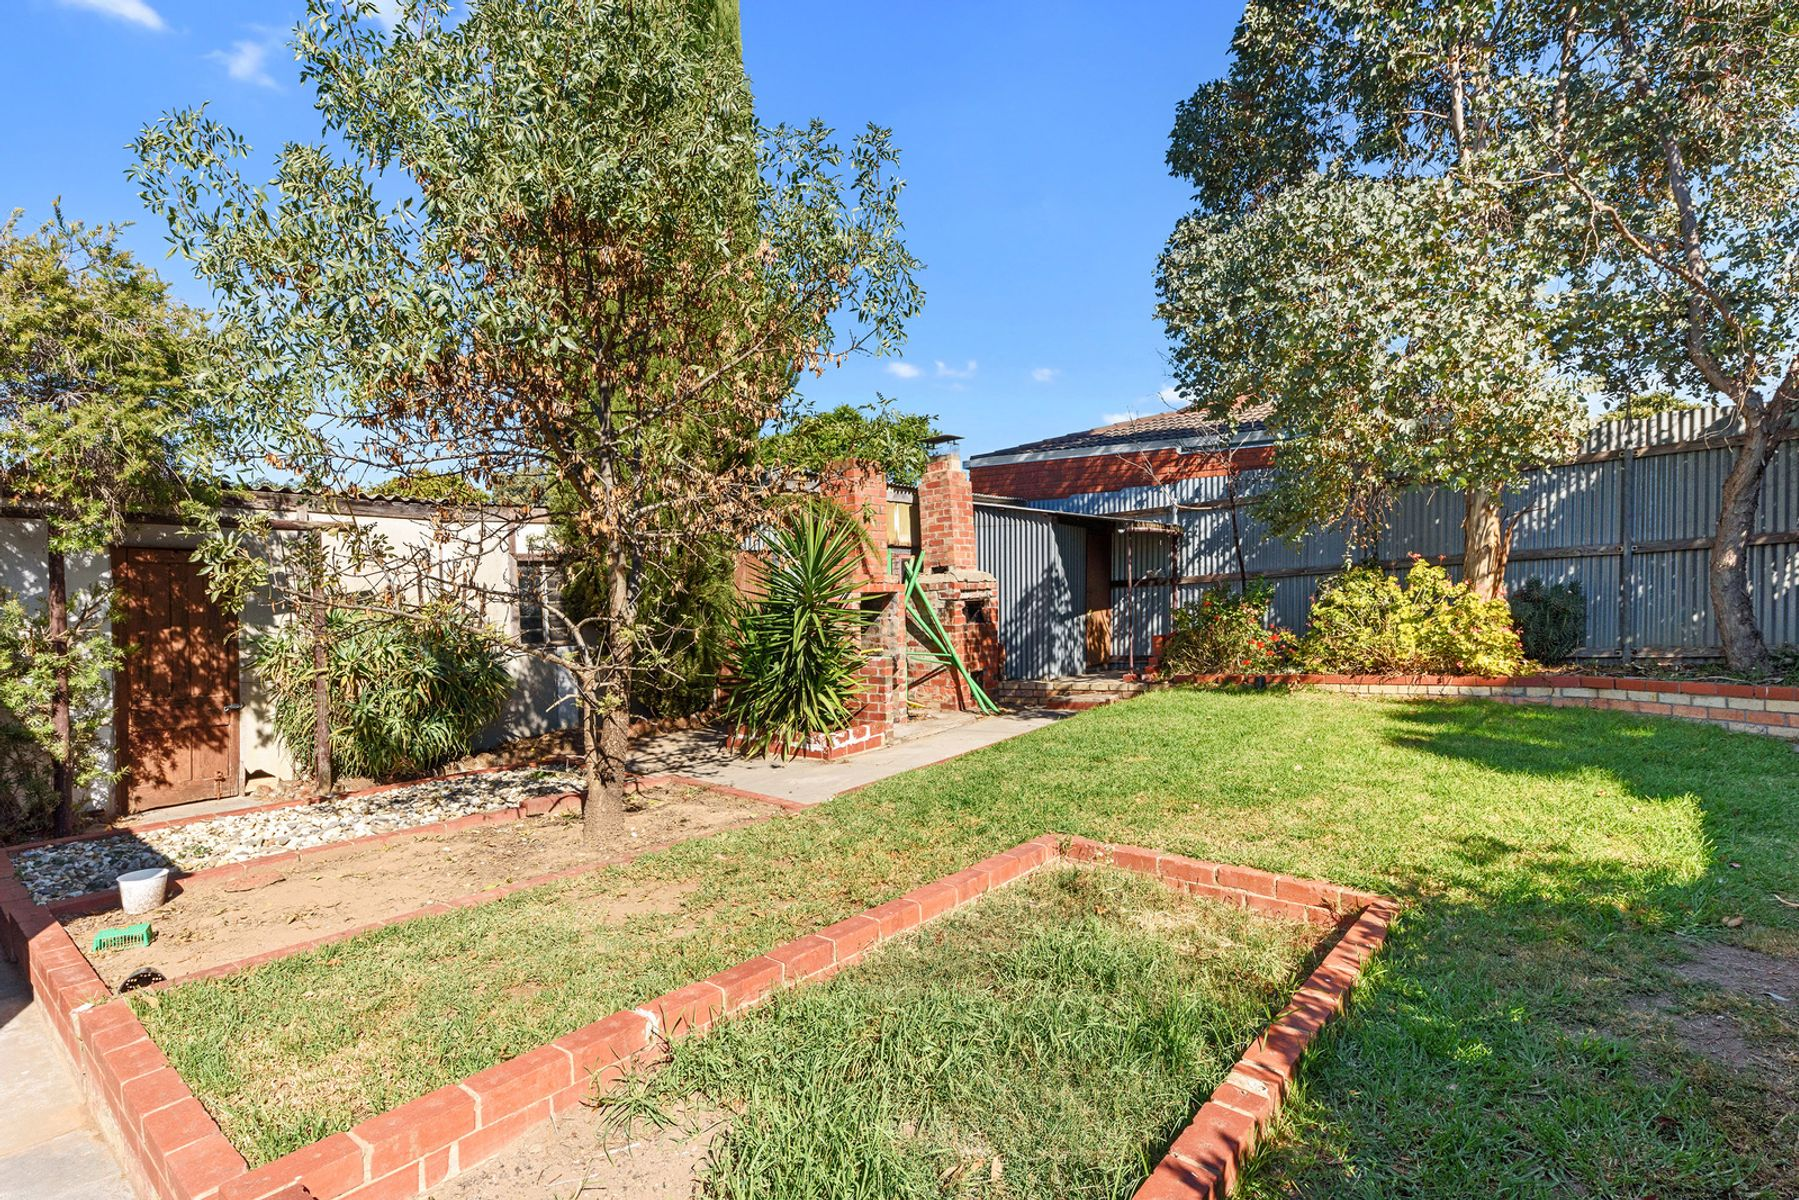 7 Black Street, Long Gully, VIC 3550